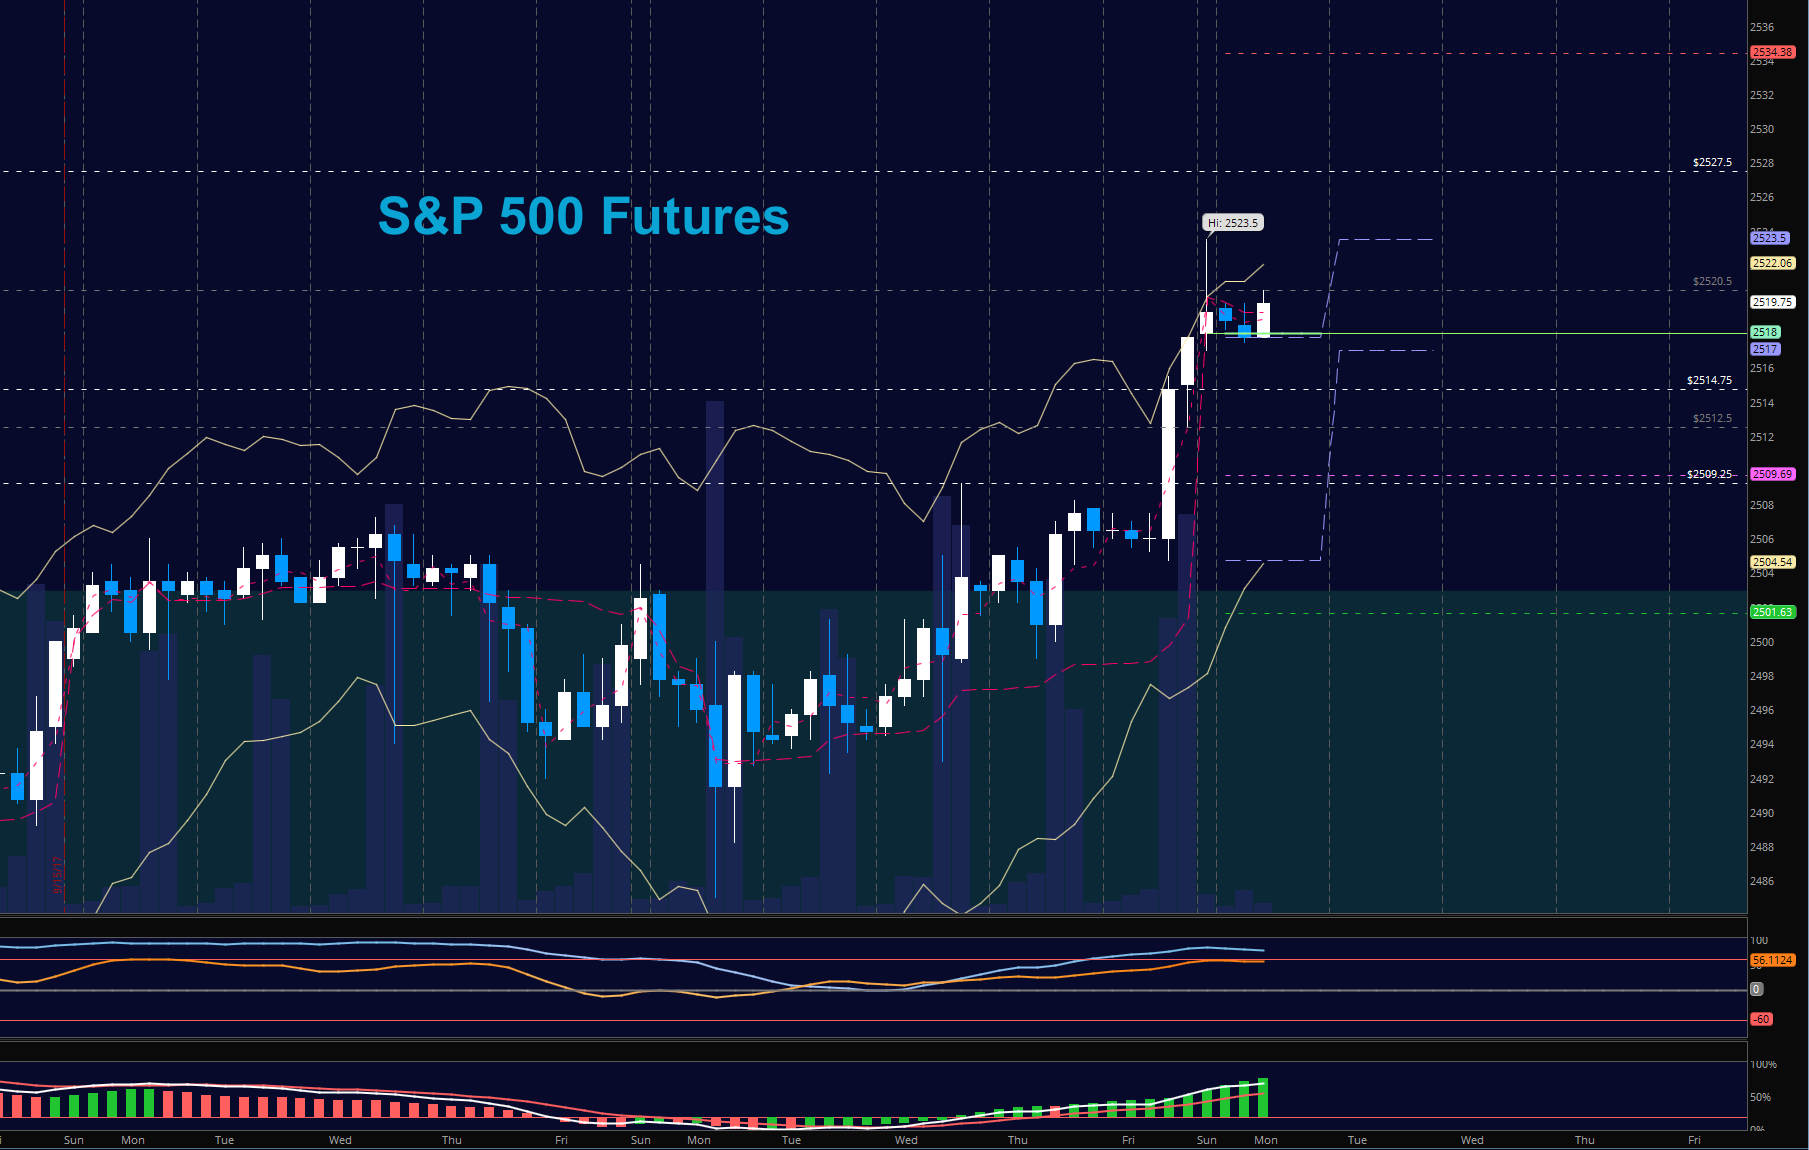 S p 500 futures trading outlook for october 2 see it market